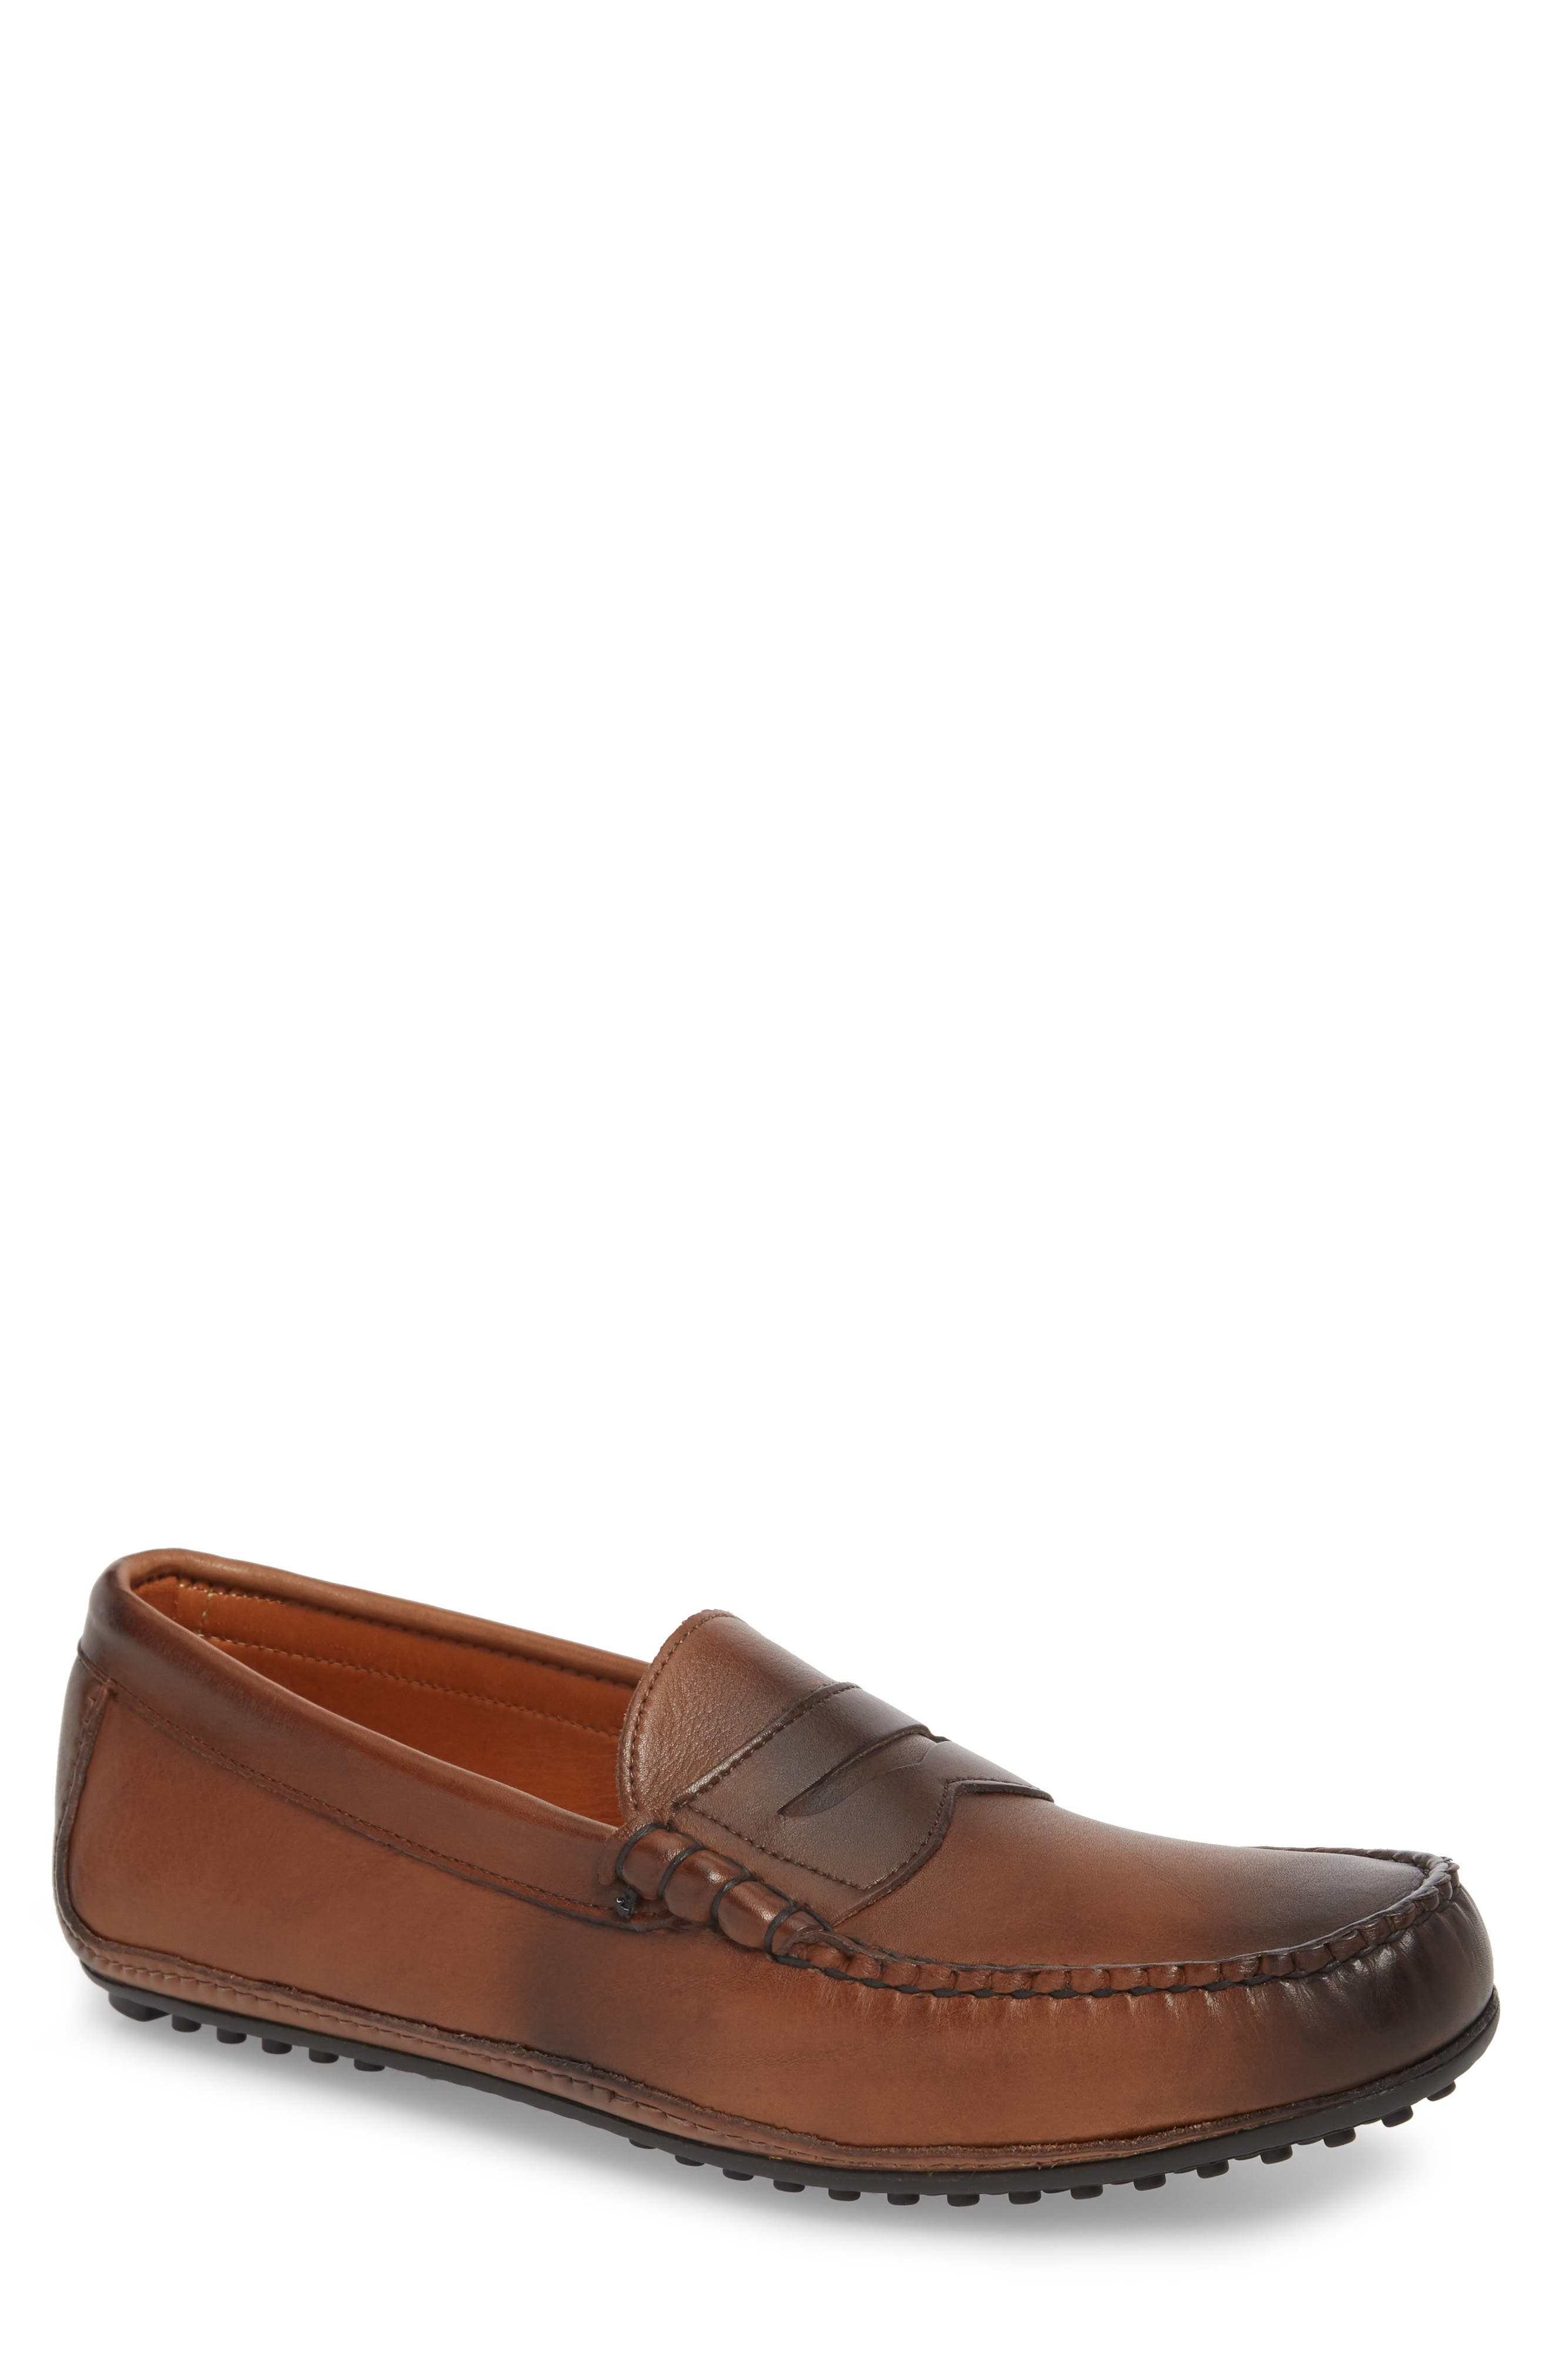 Siesta Key Penny Loafer,                             Main thumbnail 1, color,                             BROWN LEATHER